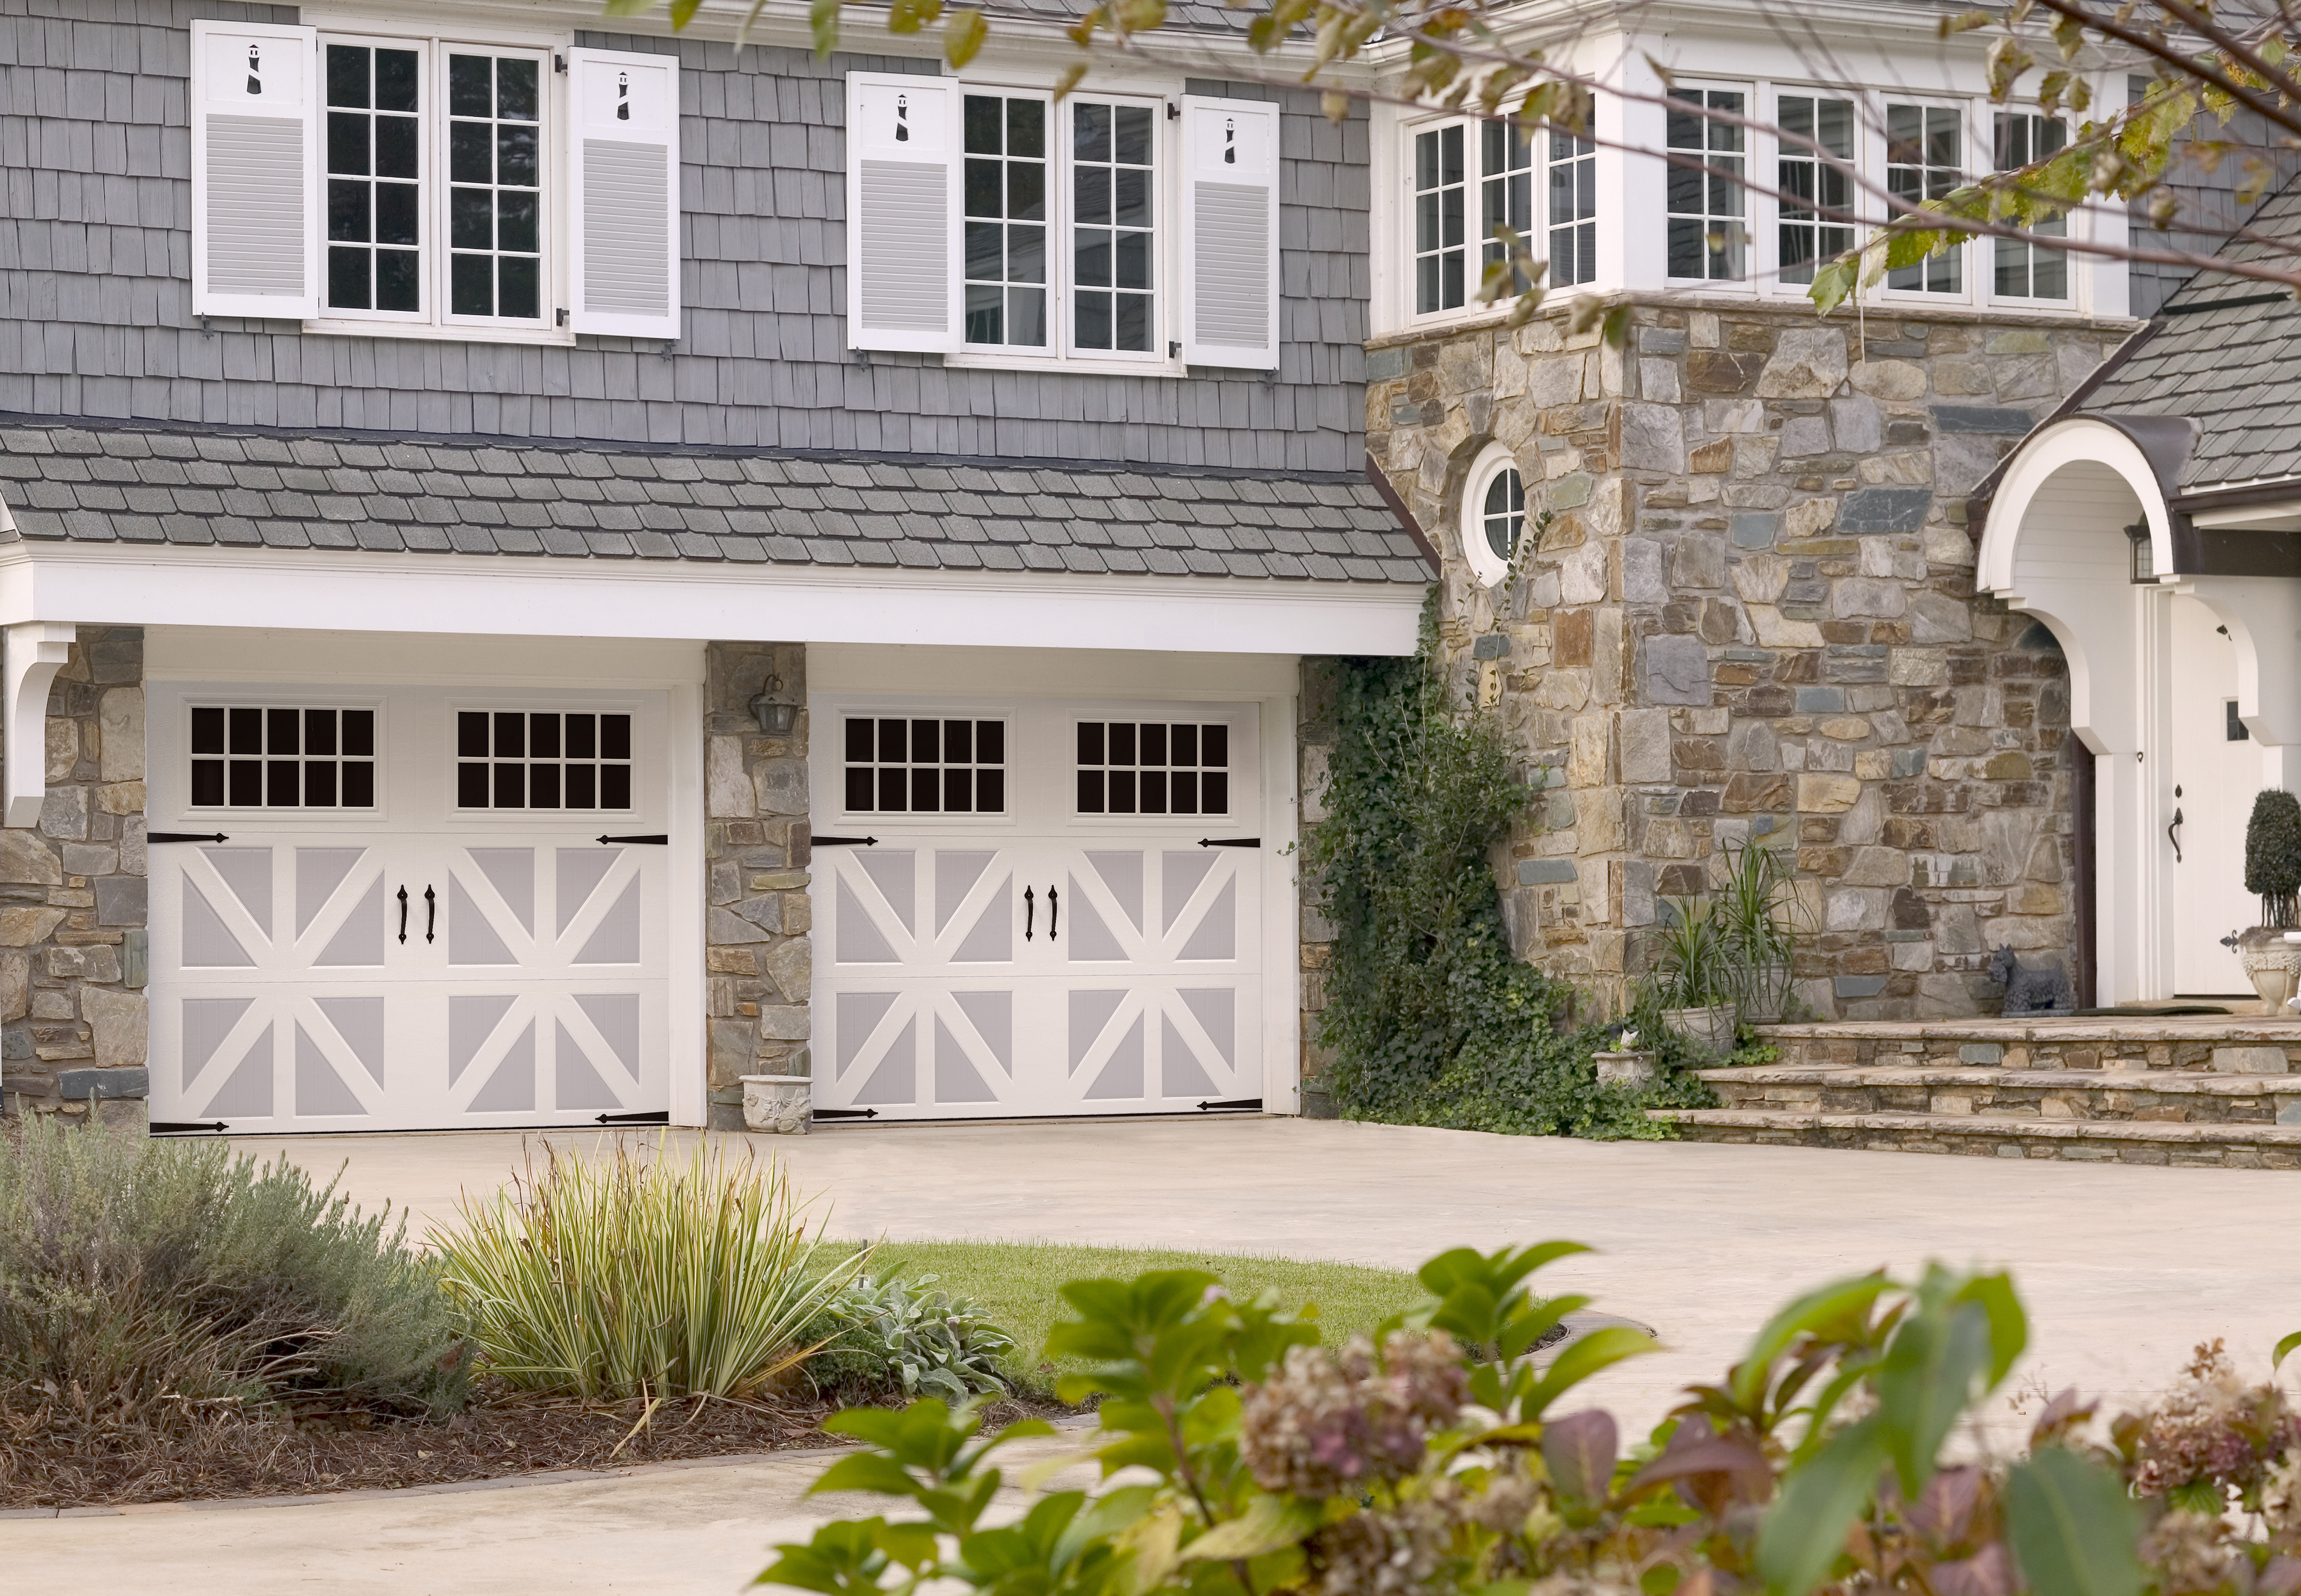 2775 #505B1B Amarr Recently Introduced Two New Offerings To The Classica Collection  image Amarr Custom Garage Doors 37534000